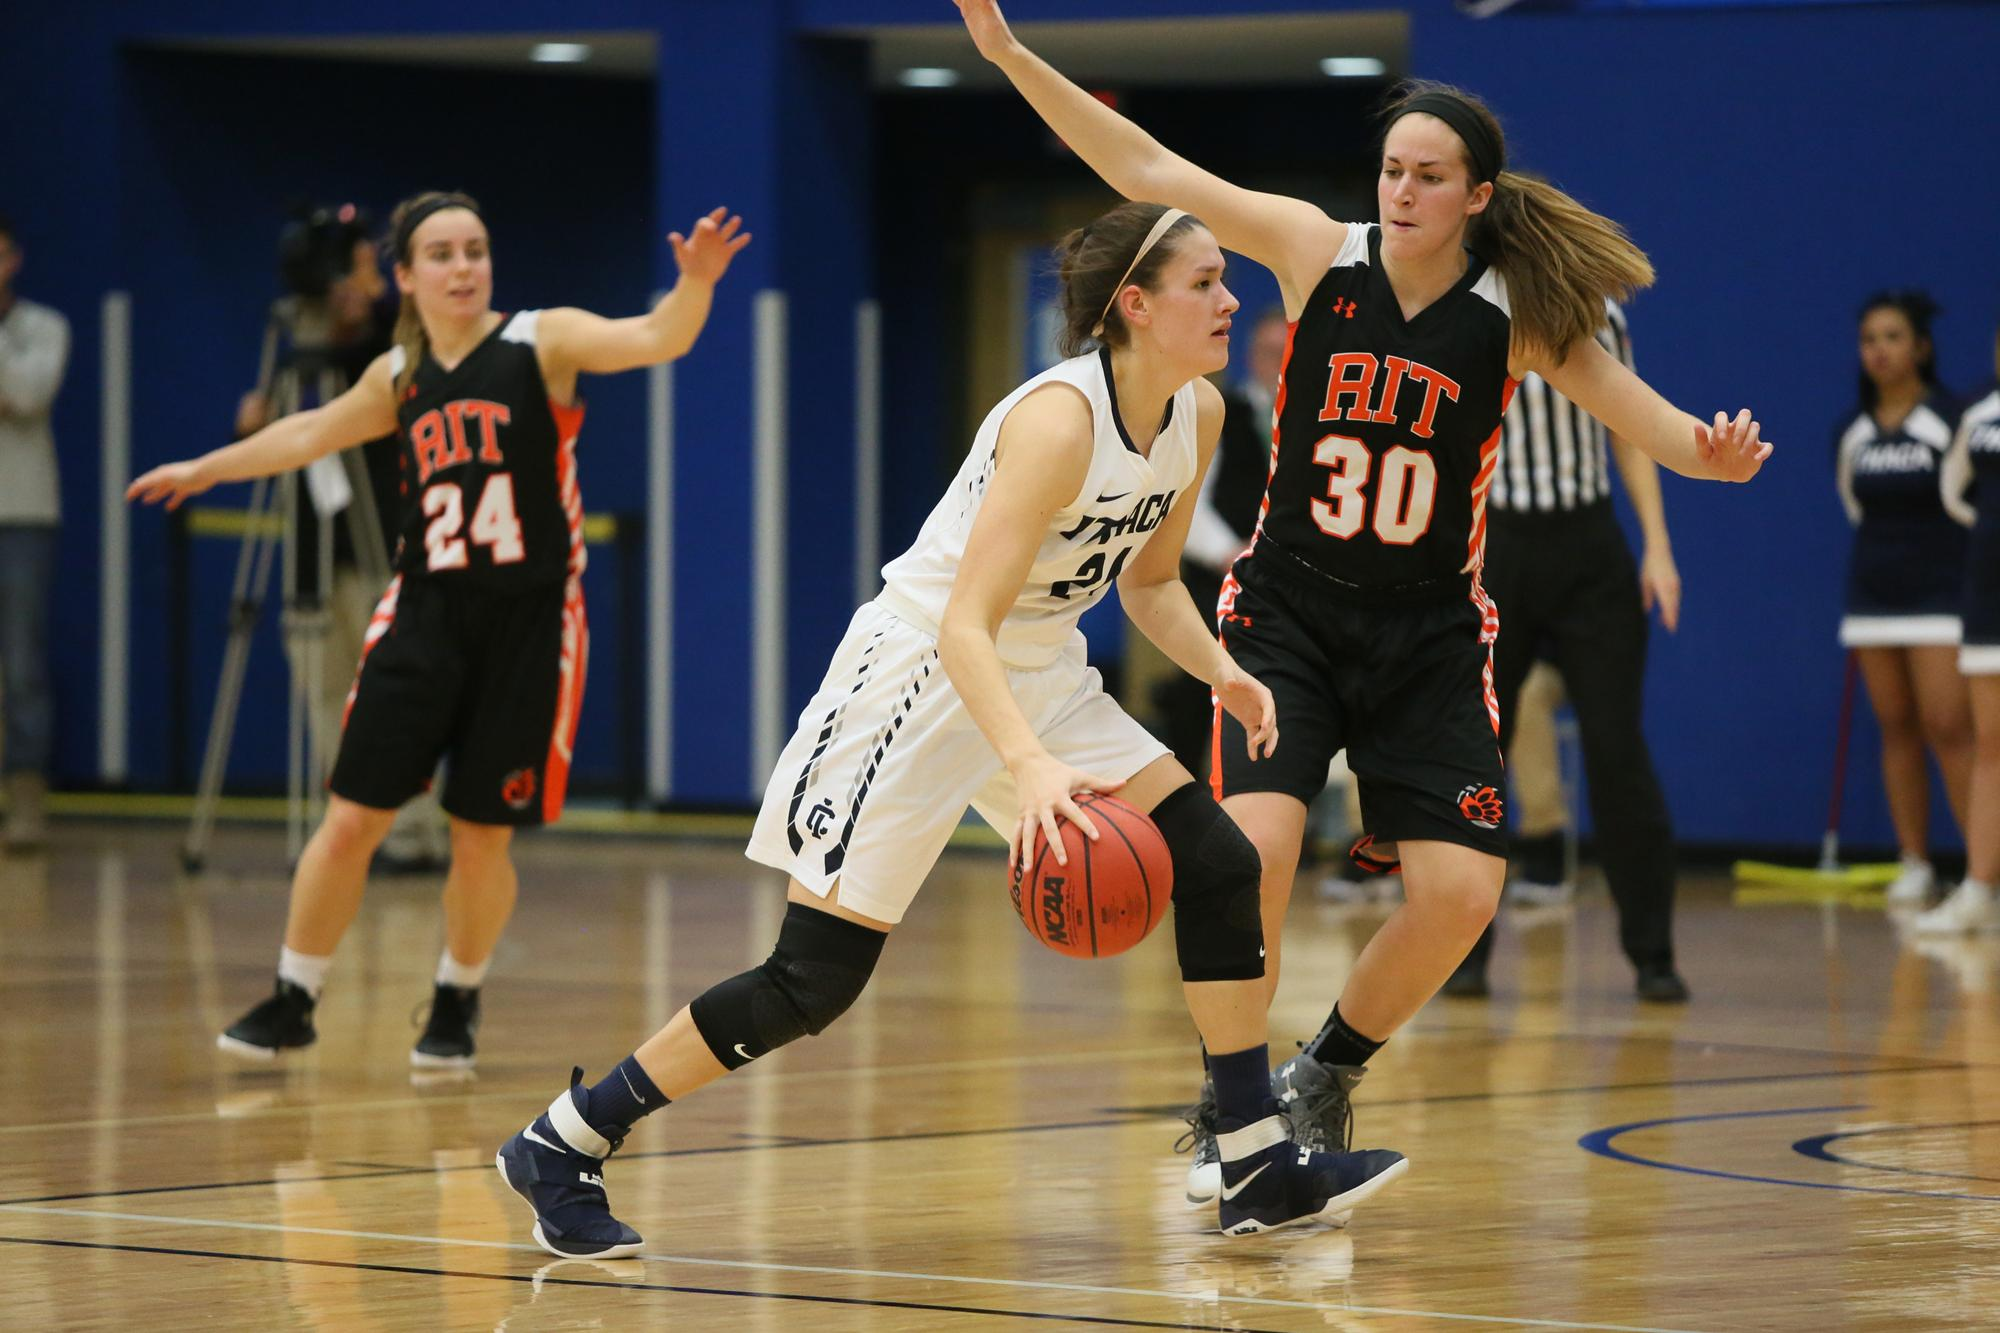 Ithaca college athletics womens basketball 9212017 33100 pm publicscrutiny Choice Image